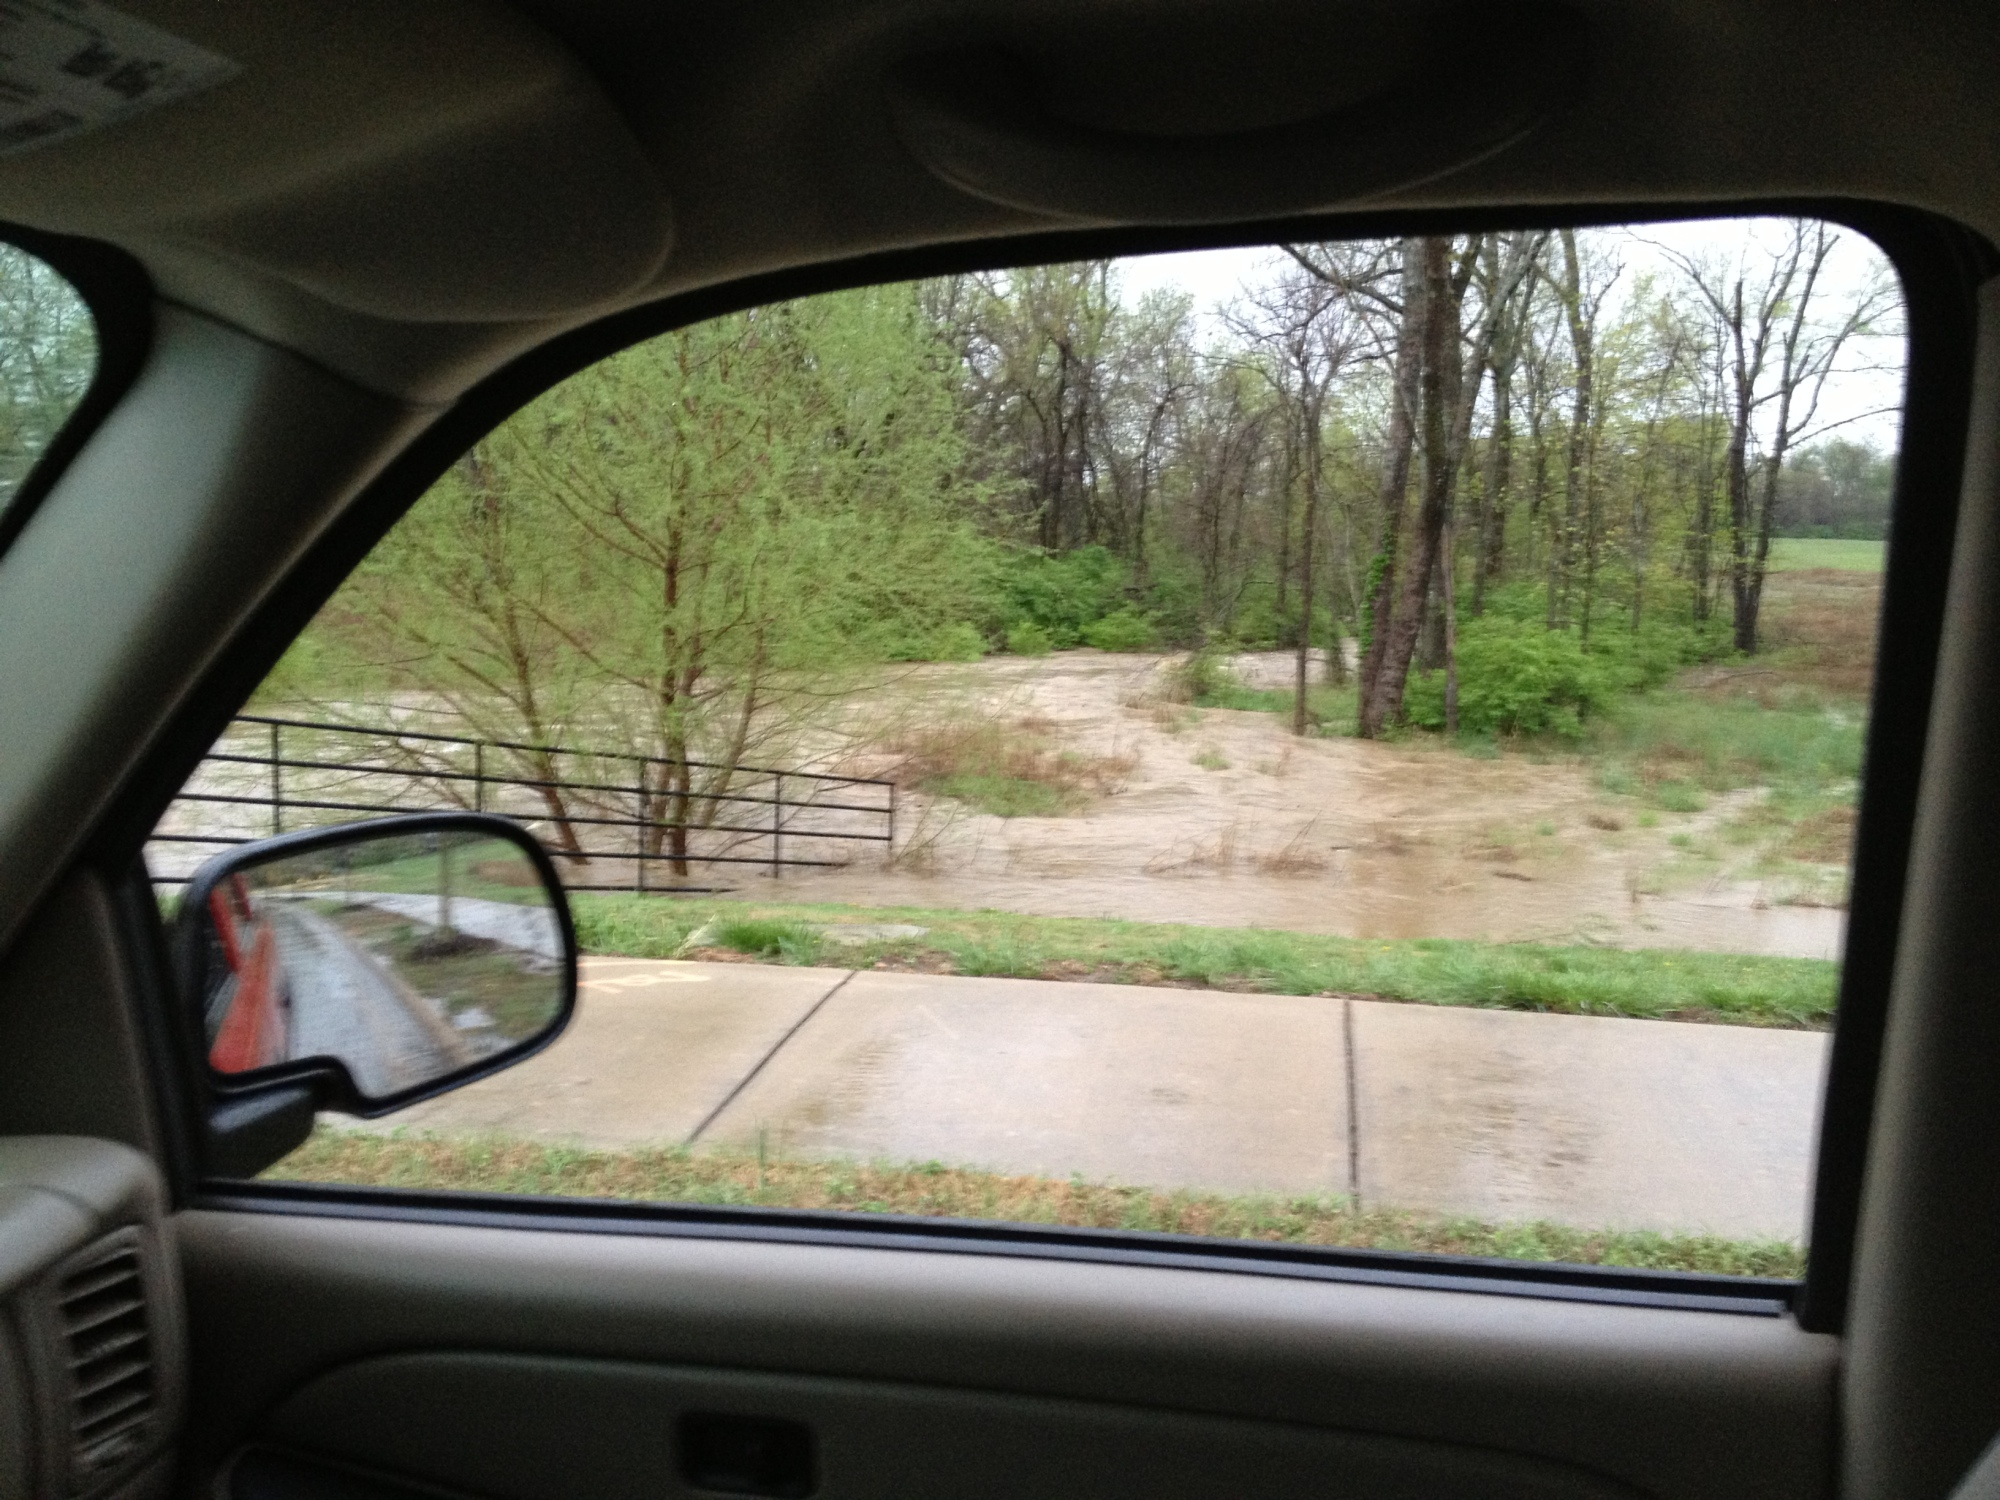 62 and S Holland Drive, farmington/fayetteville city limits. Creek is normally 3 feet wide.